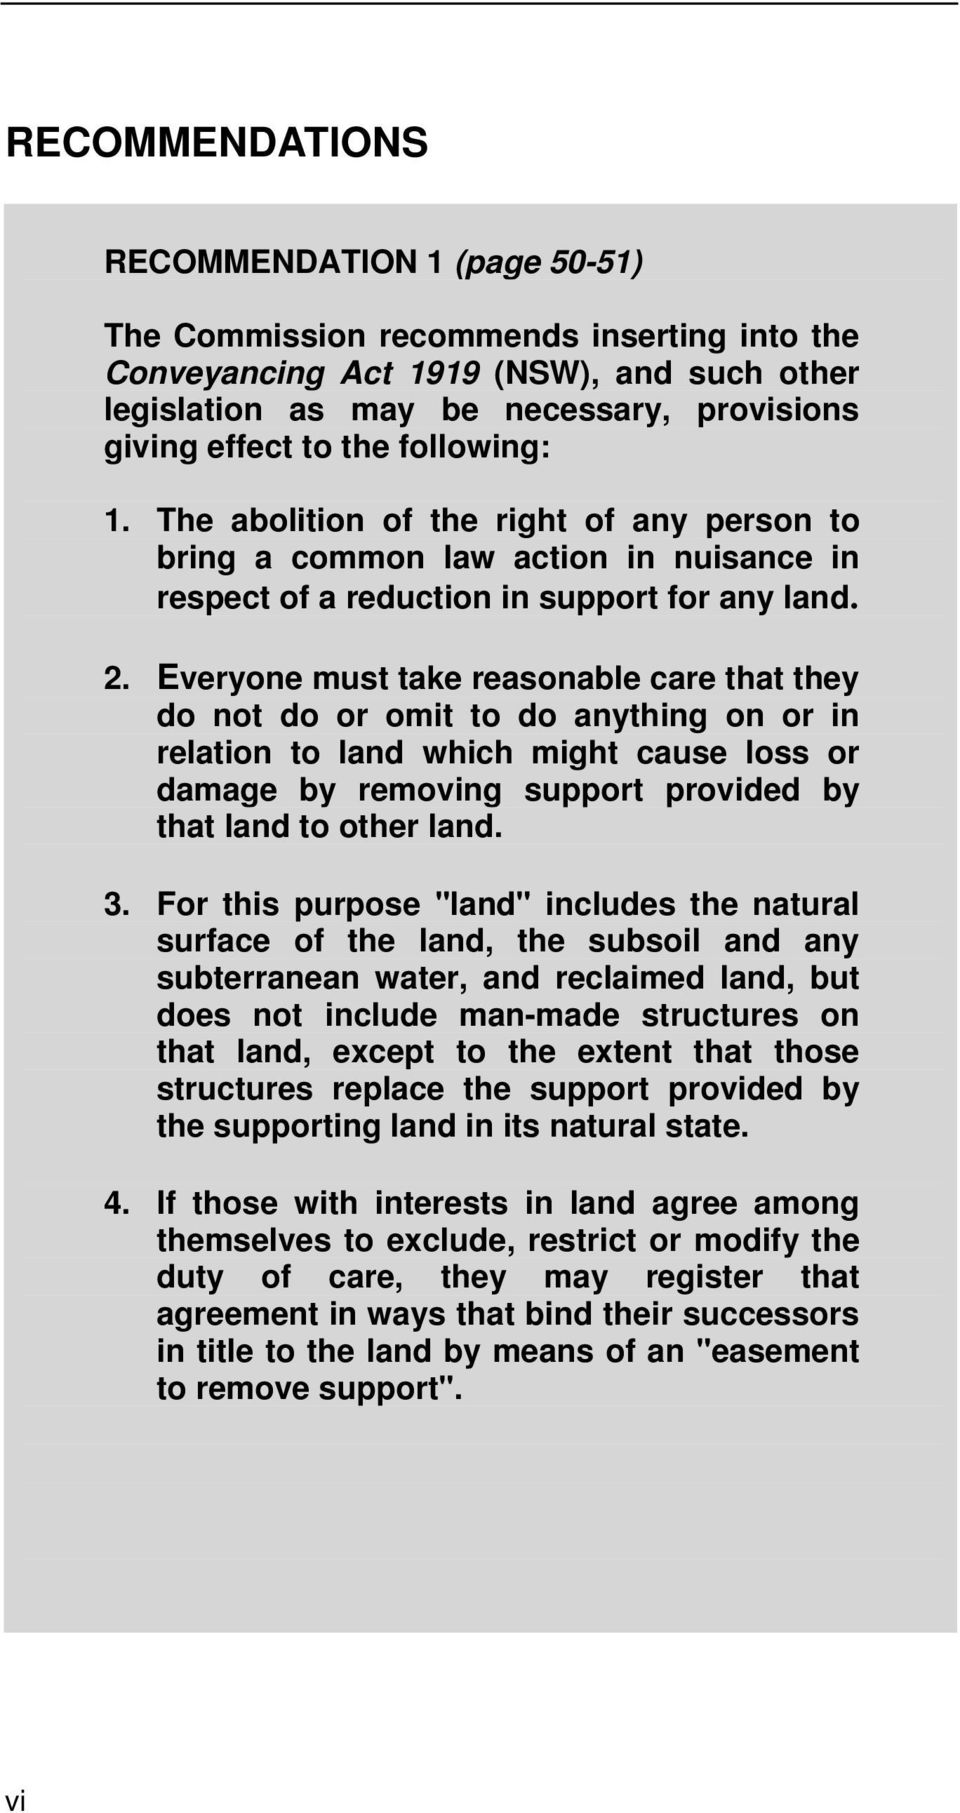 Everyone must take reasonable care that they do not do or omit to do anything on or in relation to land which might cause loss or damage by removing support provided by that land to other land. 3.